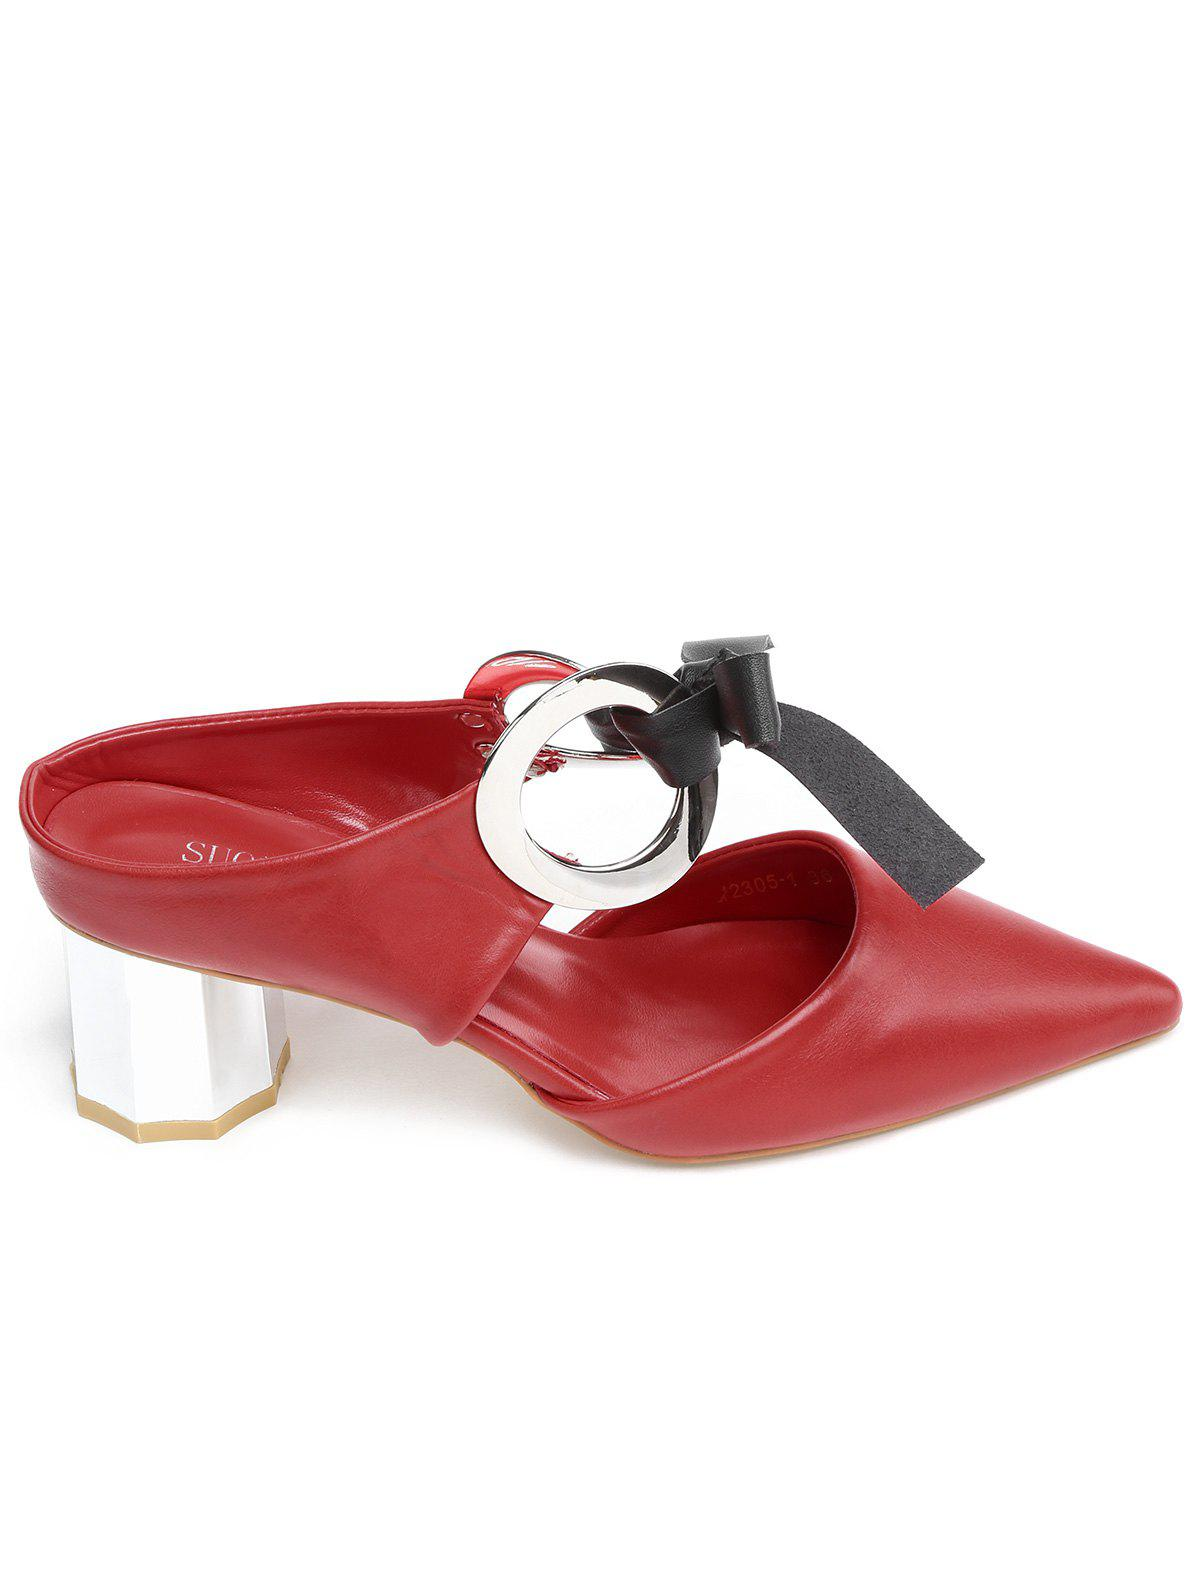 Point Toe Bowknot PU Leather Block Heel Sandals - LOVE RED 39